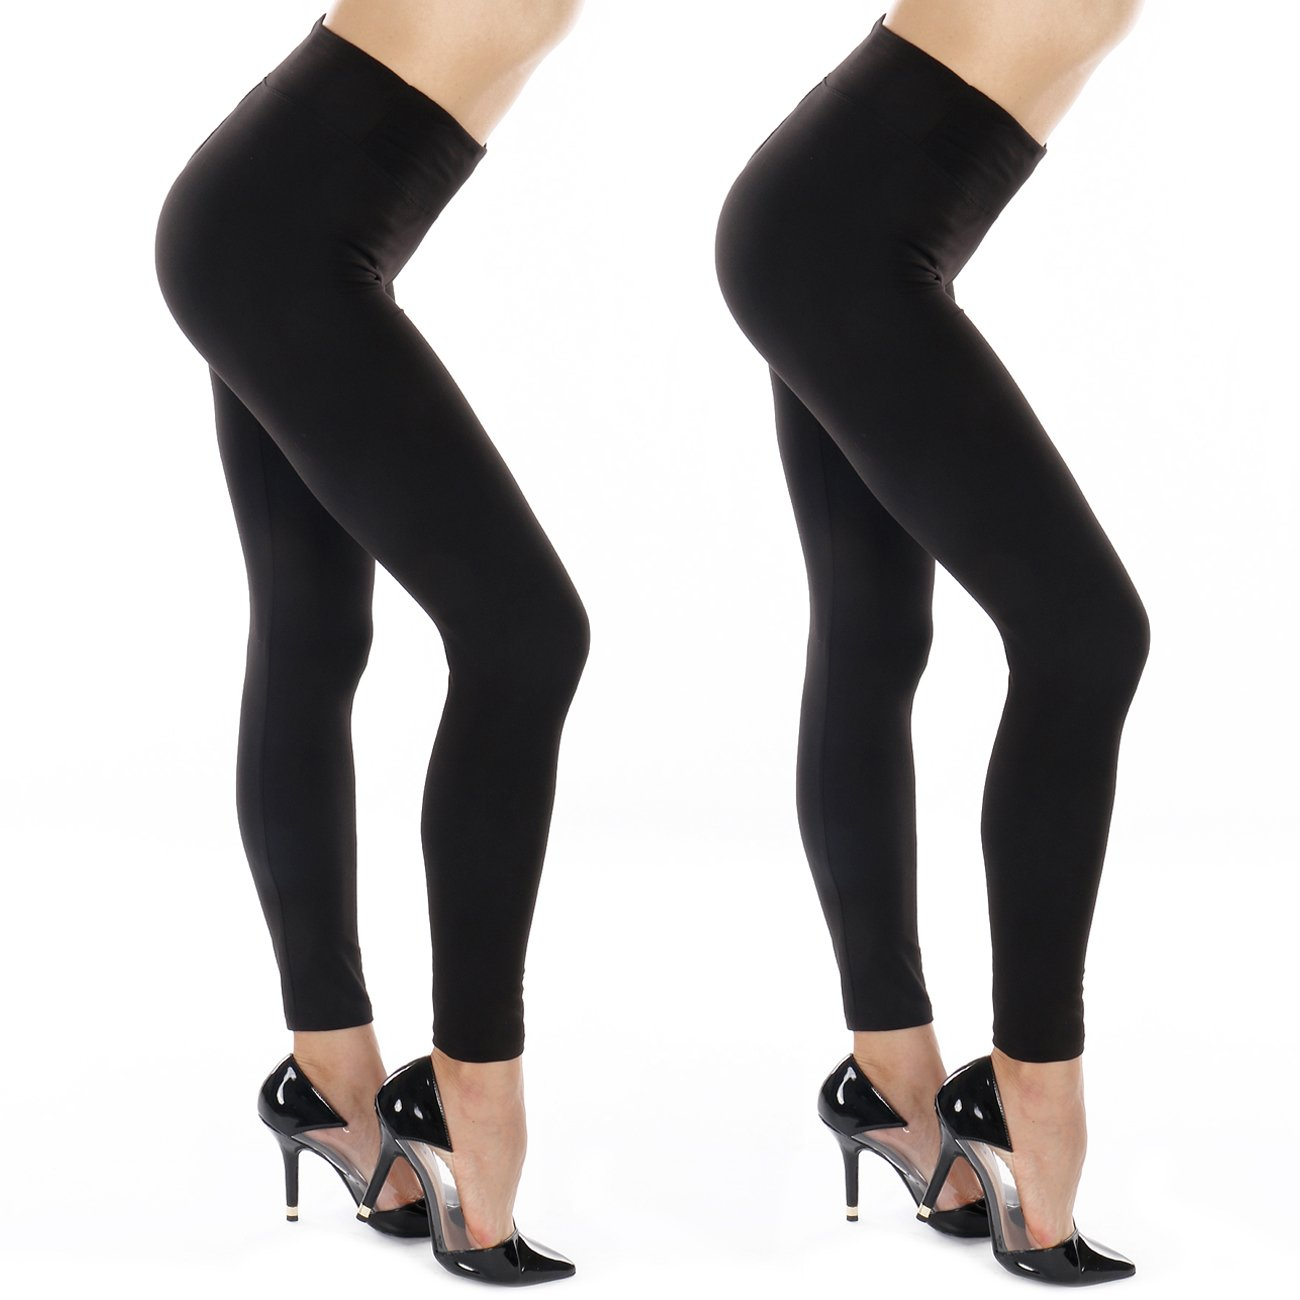 8ec3d665 Silky Soft Non See Thru 3 inches Yoga Waistband- Premium Brushed Knit 4way  Stretch Fashion Leggings